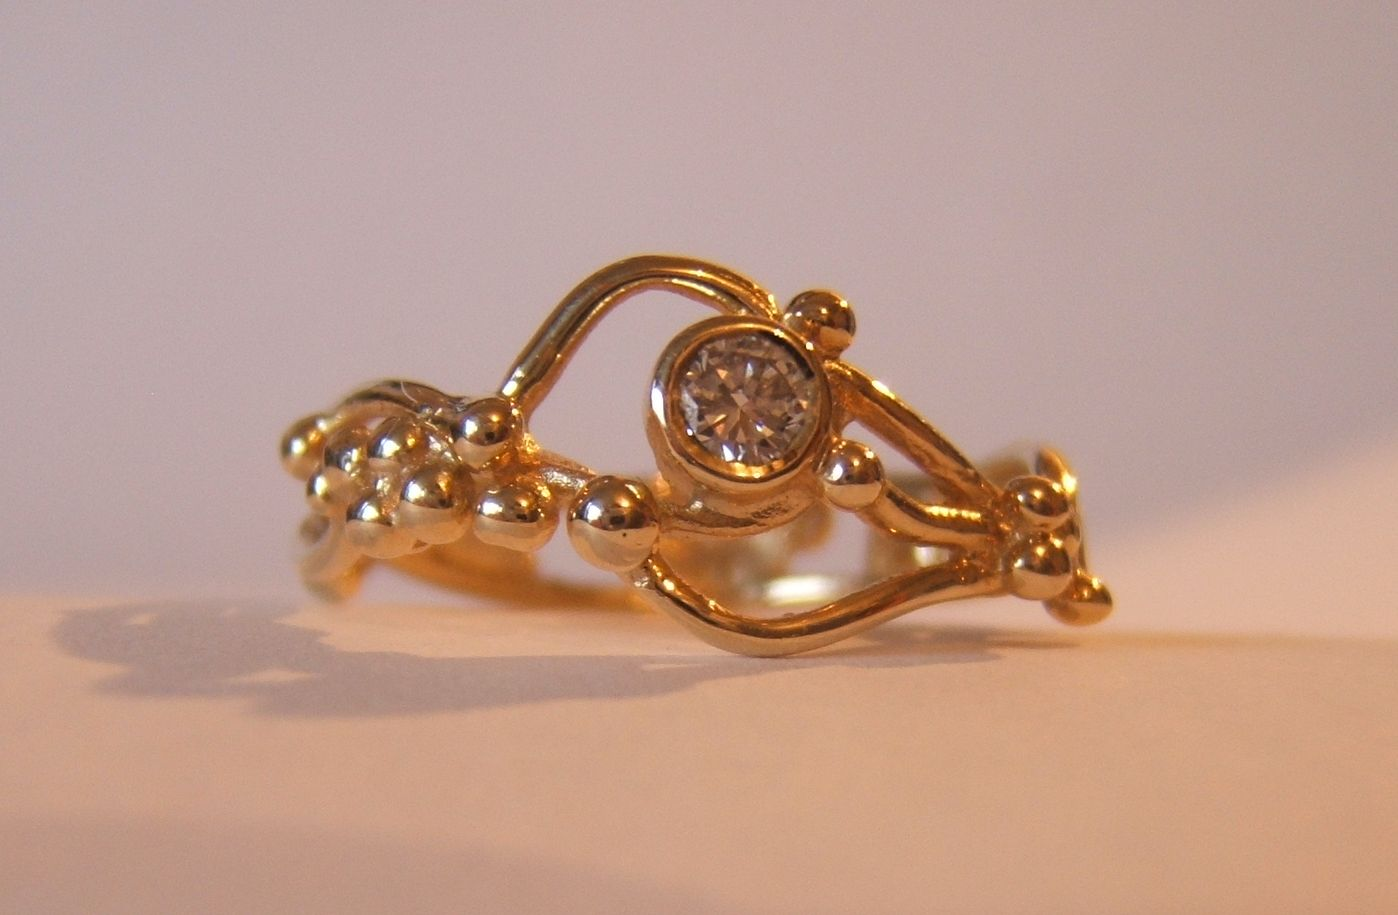 18ct gold ebb and flow ring by helen burrell